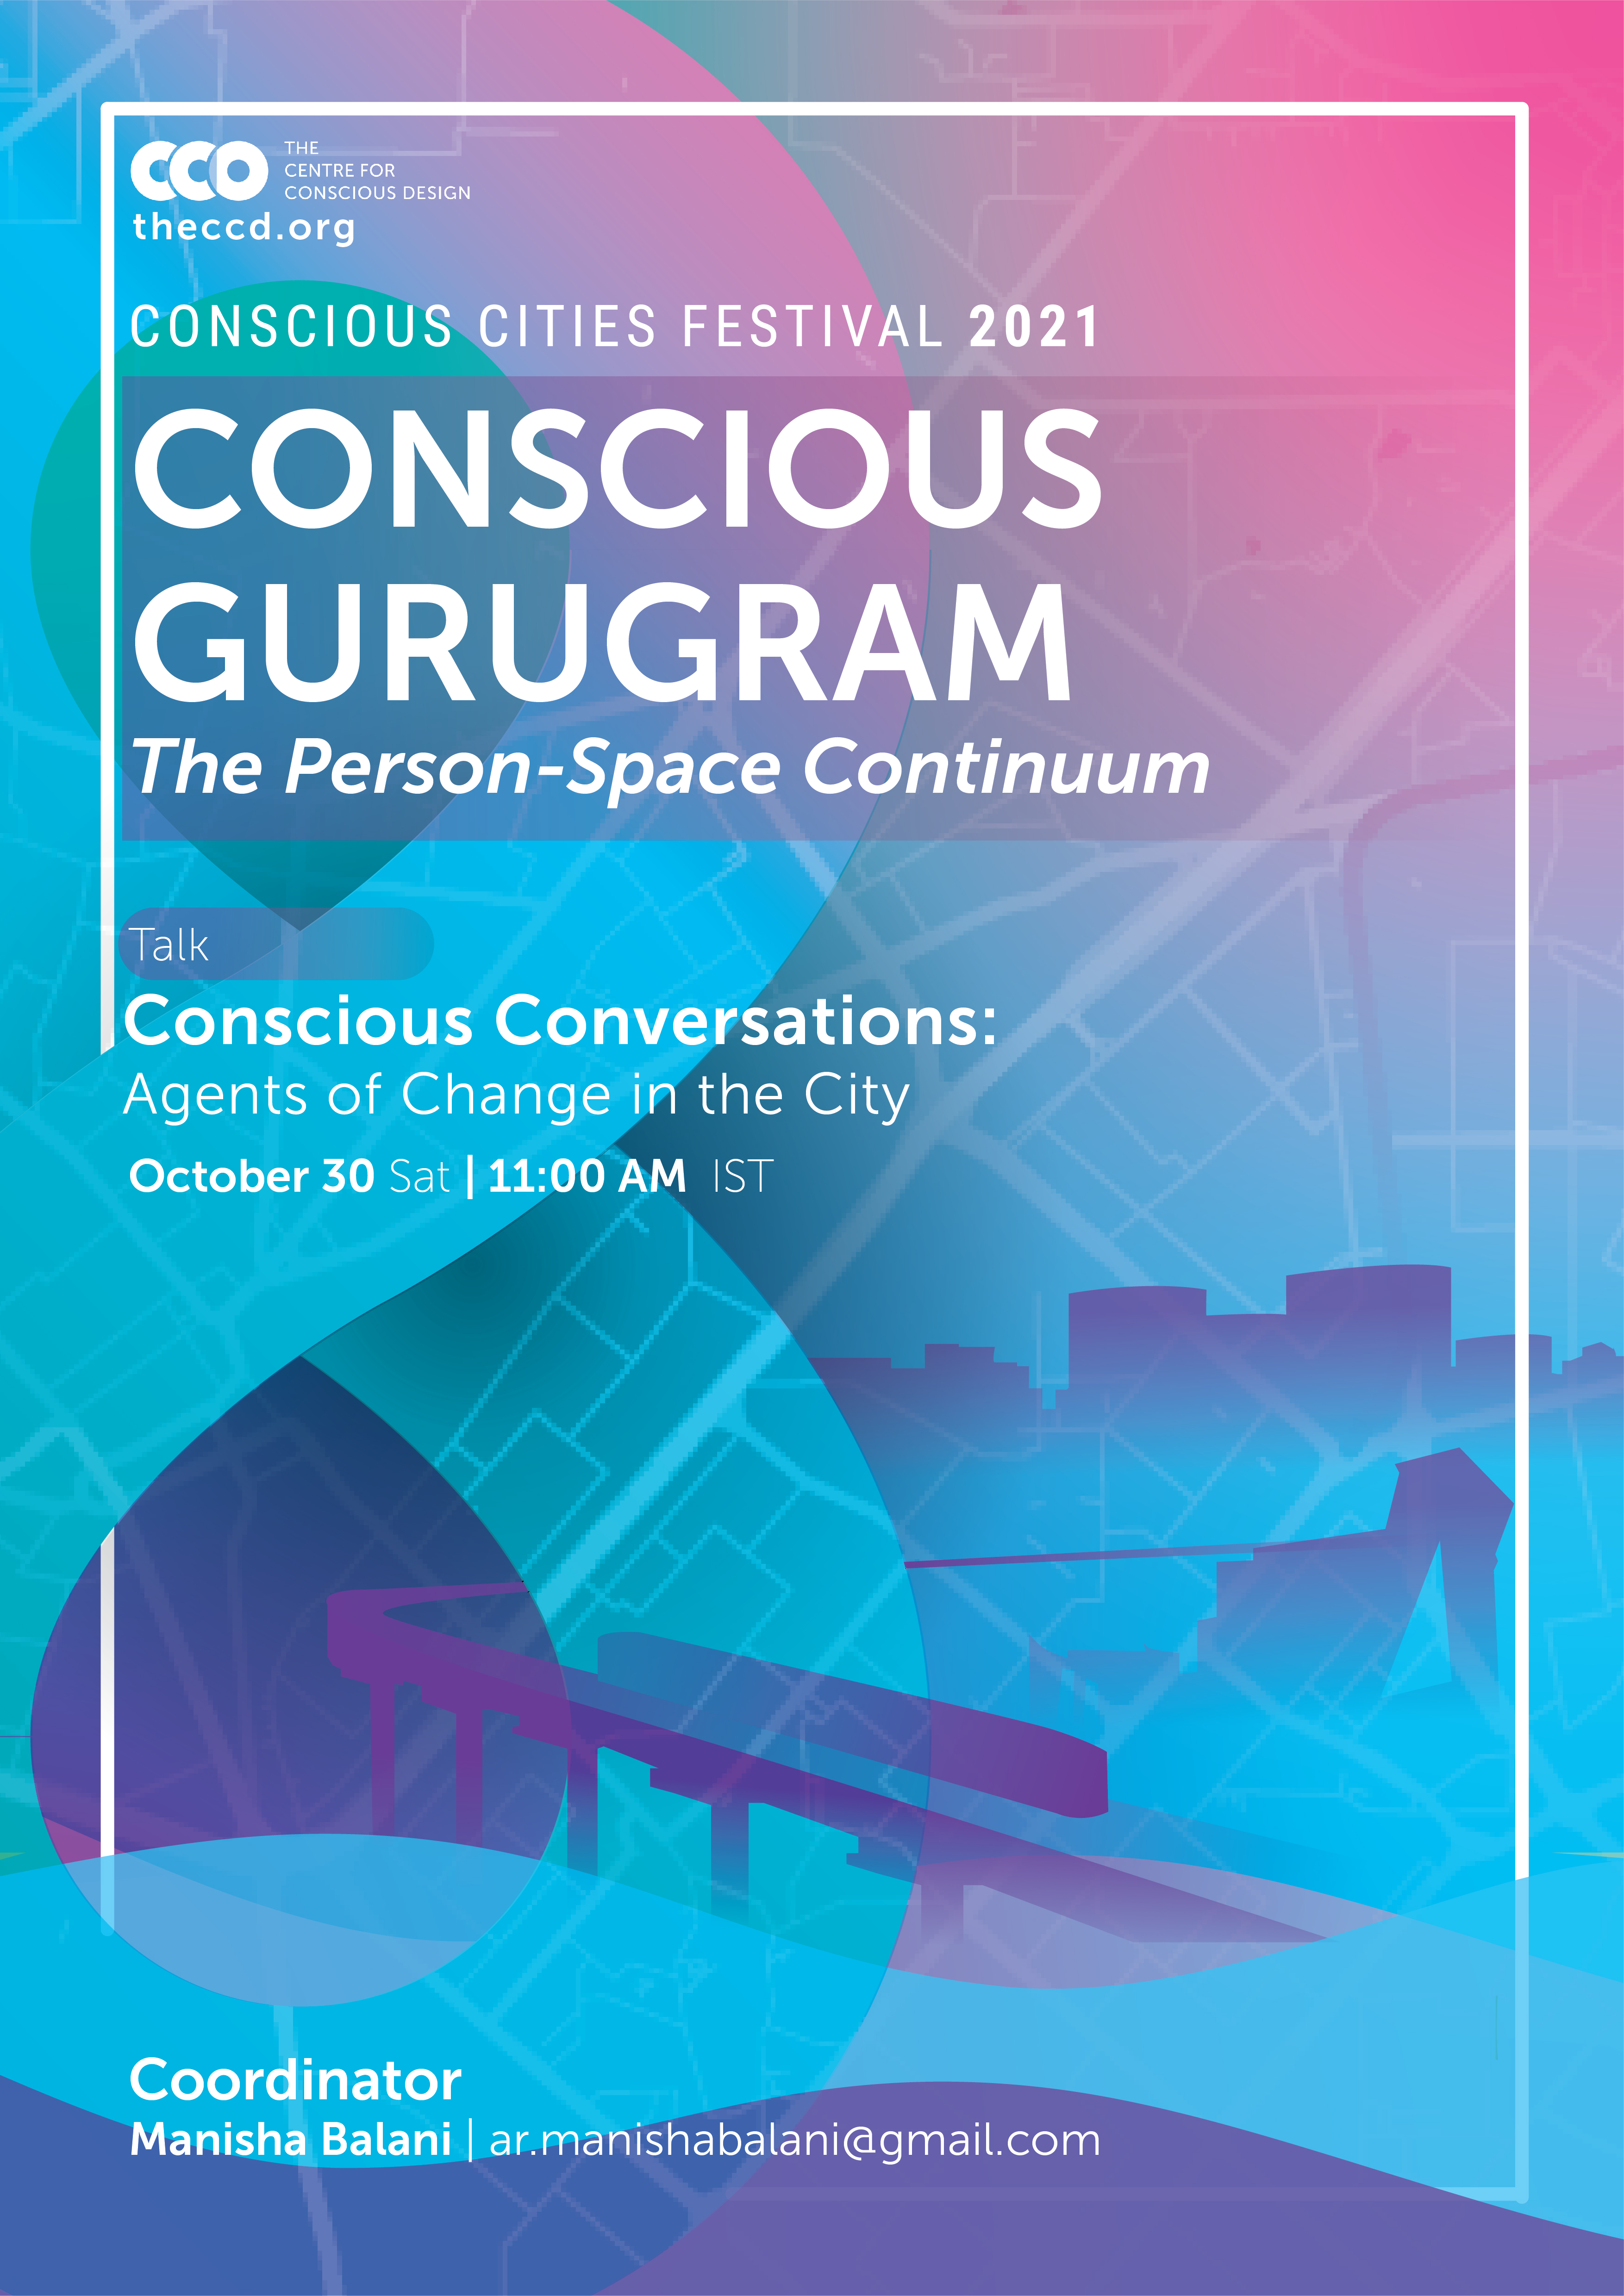 Conscious Conversations: Agents of Change in the City featured Image